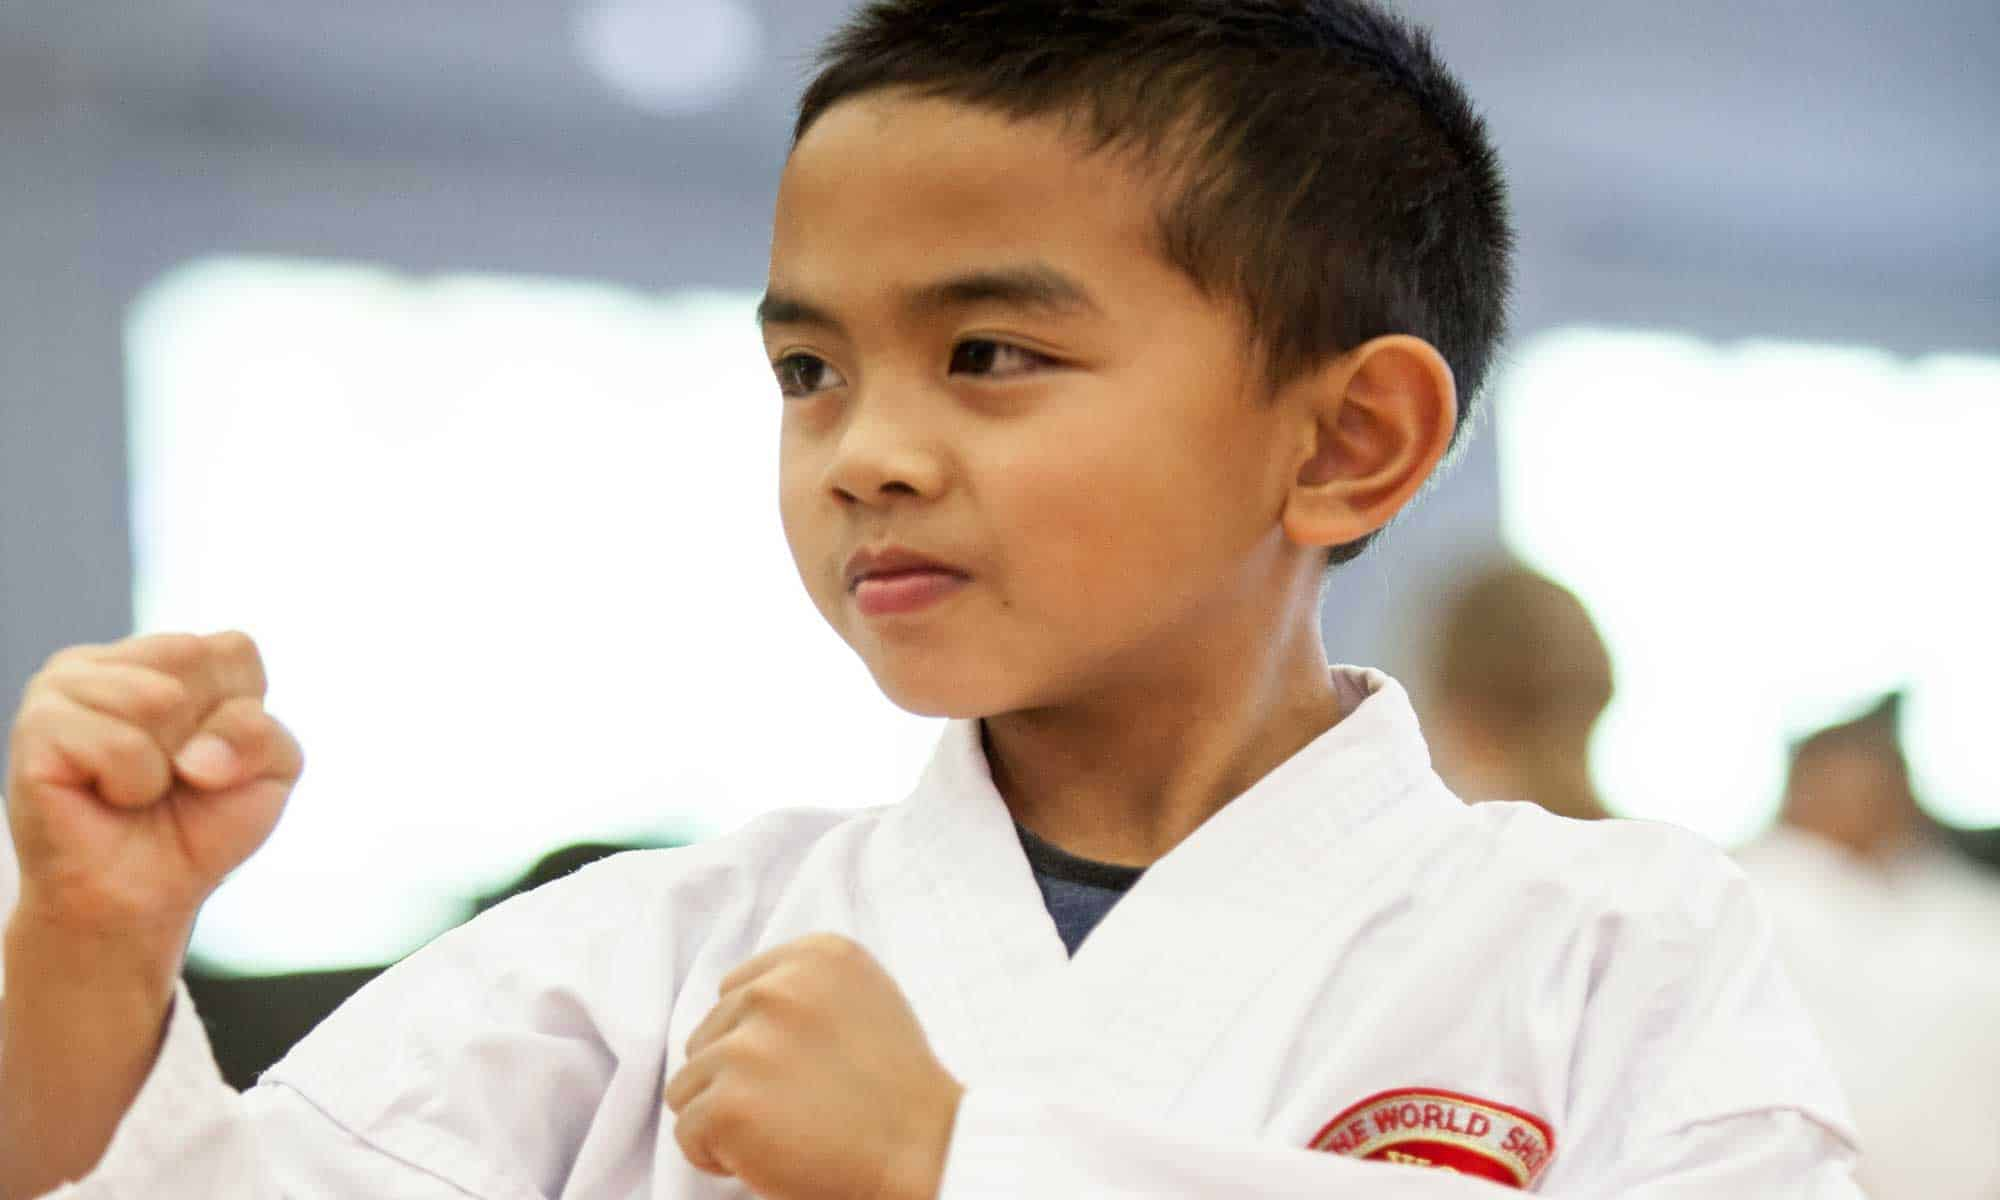 young boy with his fists up defensively looking to the left of the camera